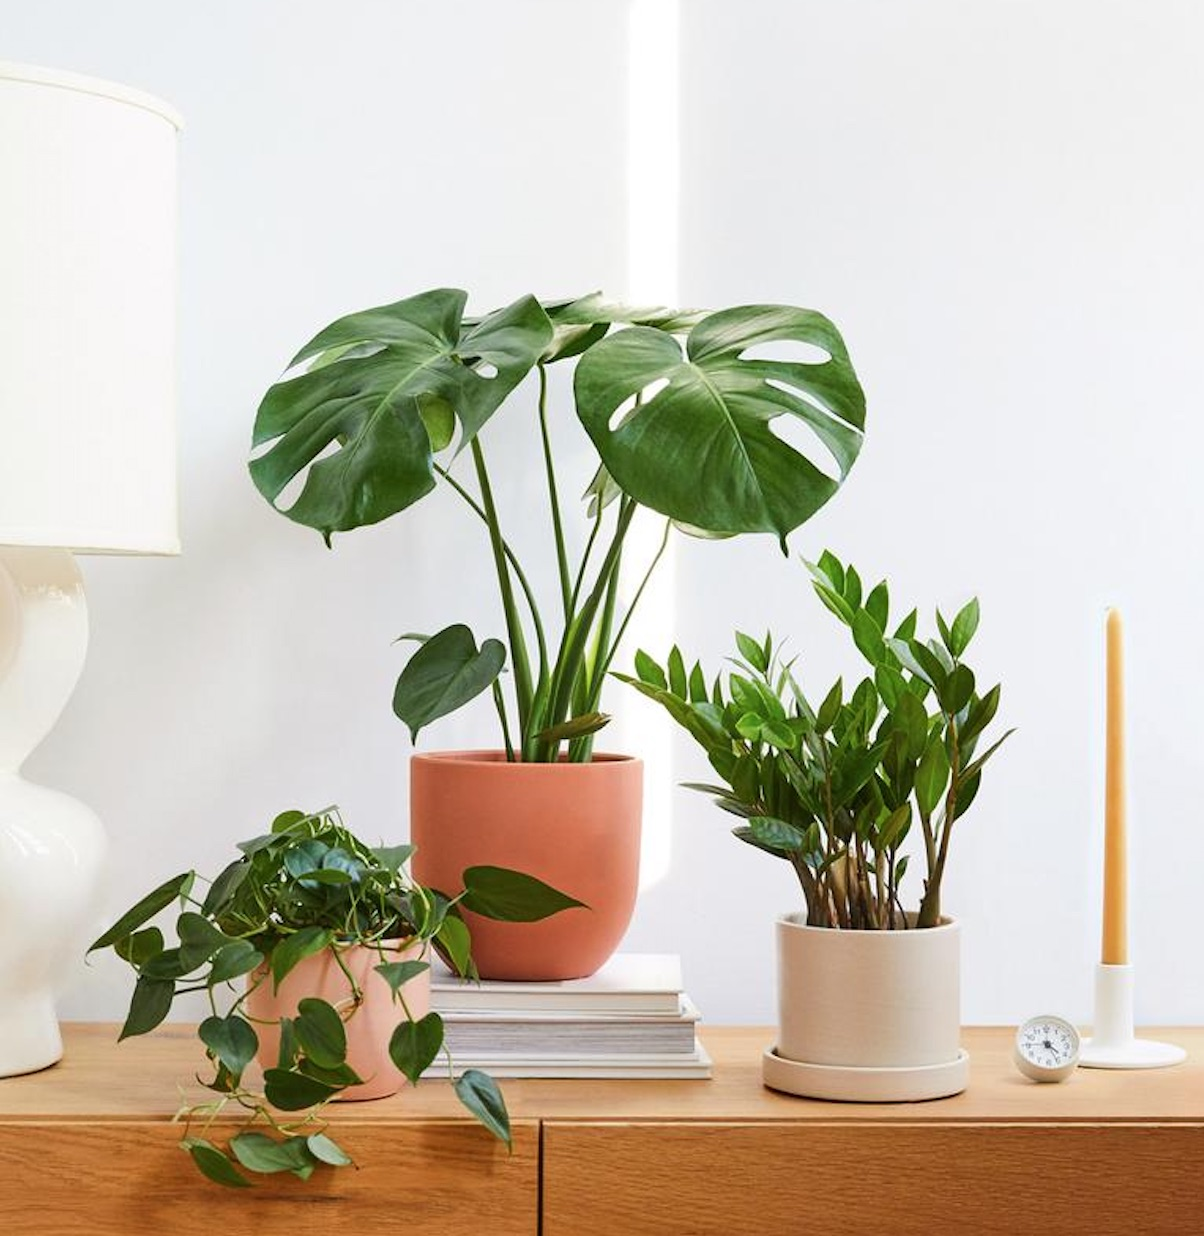 Benefits of Indoor Plants #HousePlants #AirCleaningPlants #AirPurifyingPlants #AirPurifyingHousePlants #IndoorPlants #CleanAir